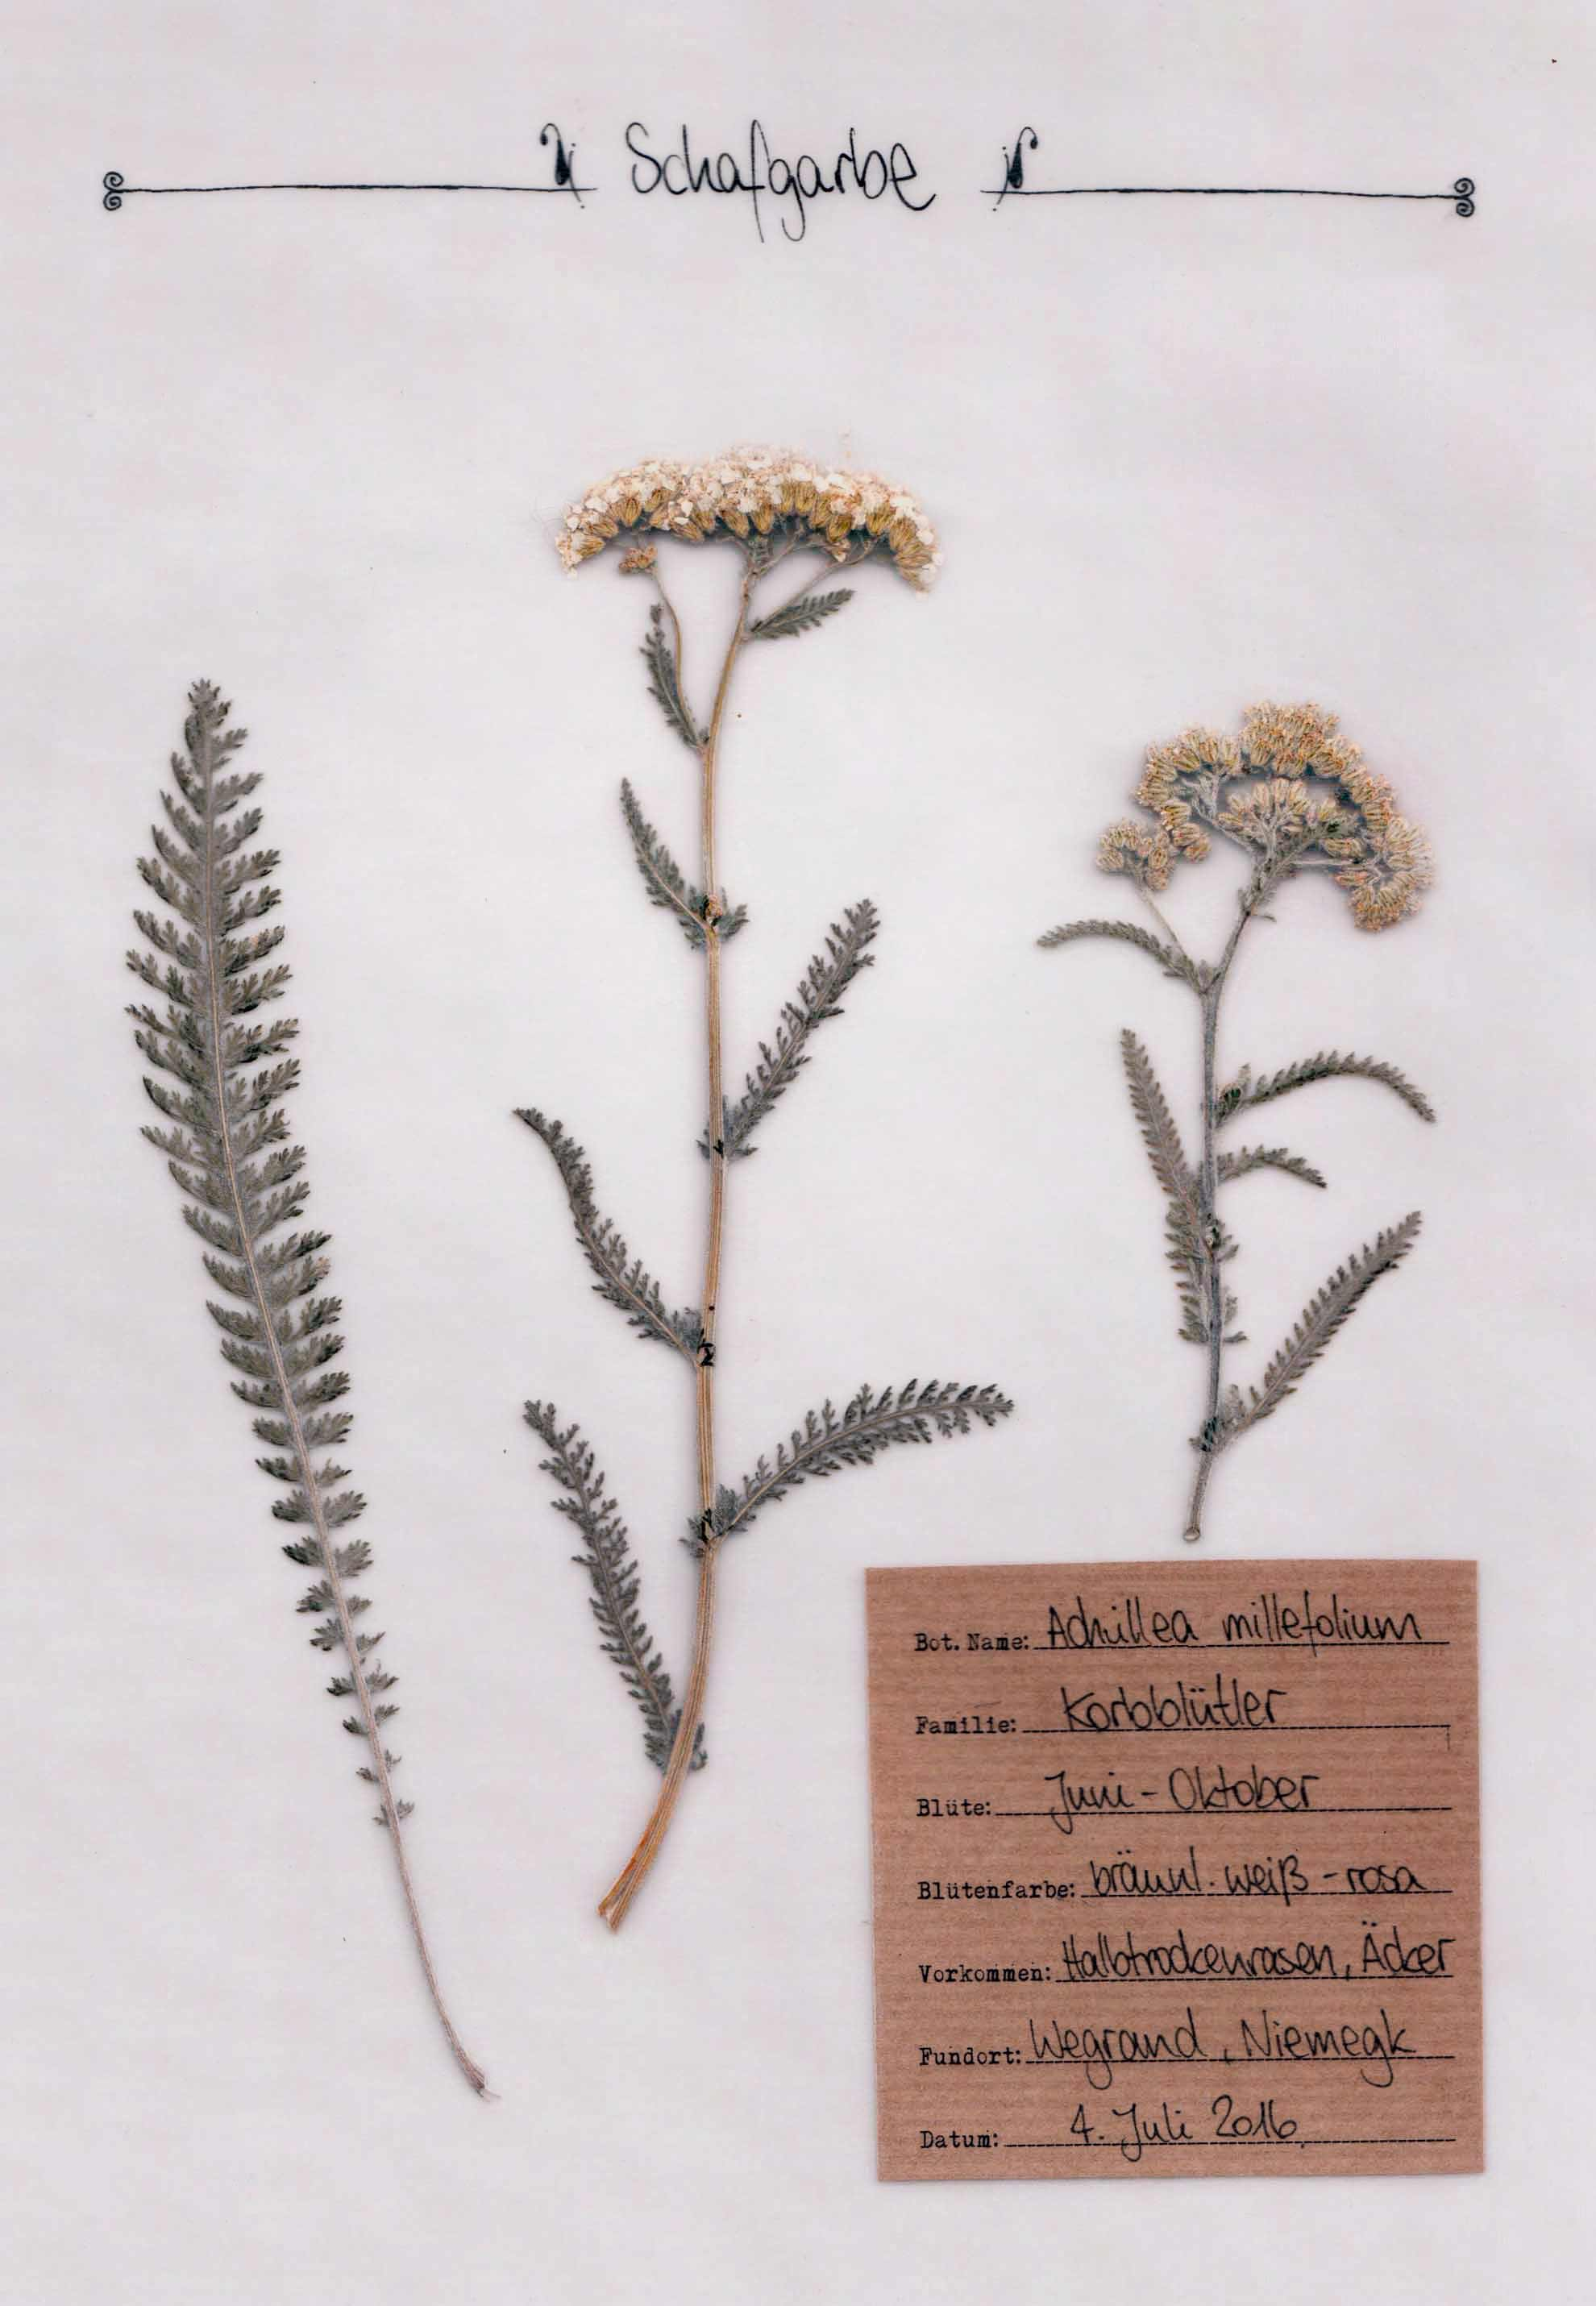 Schafgarbe – Herbal Hunter. digitales Herbarium